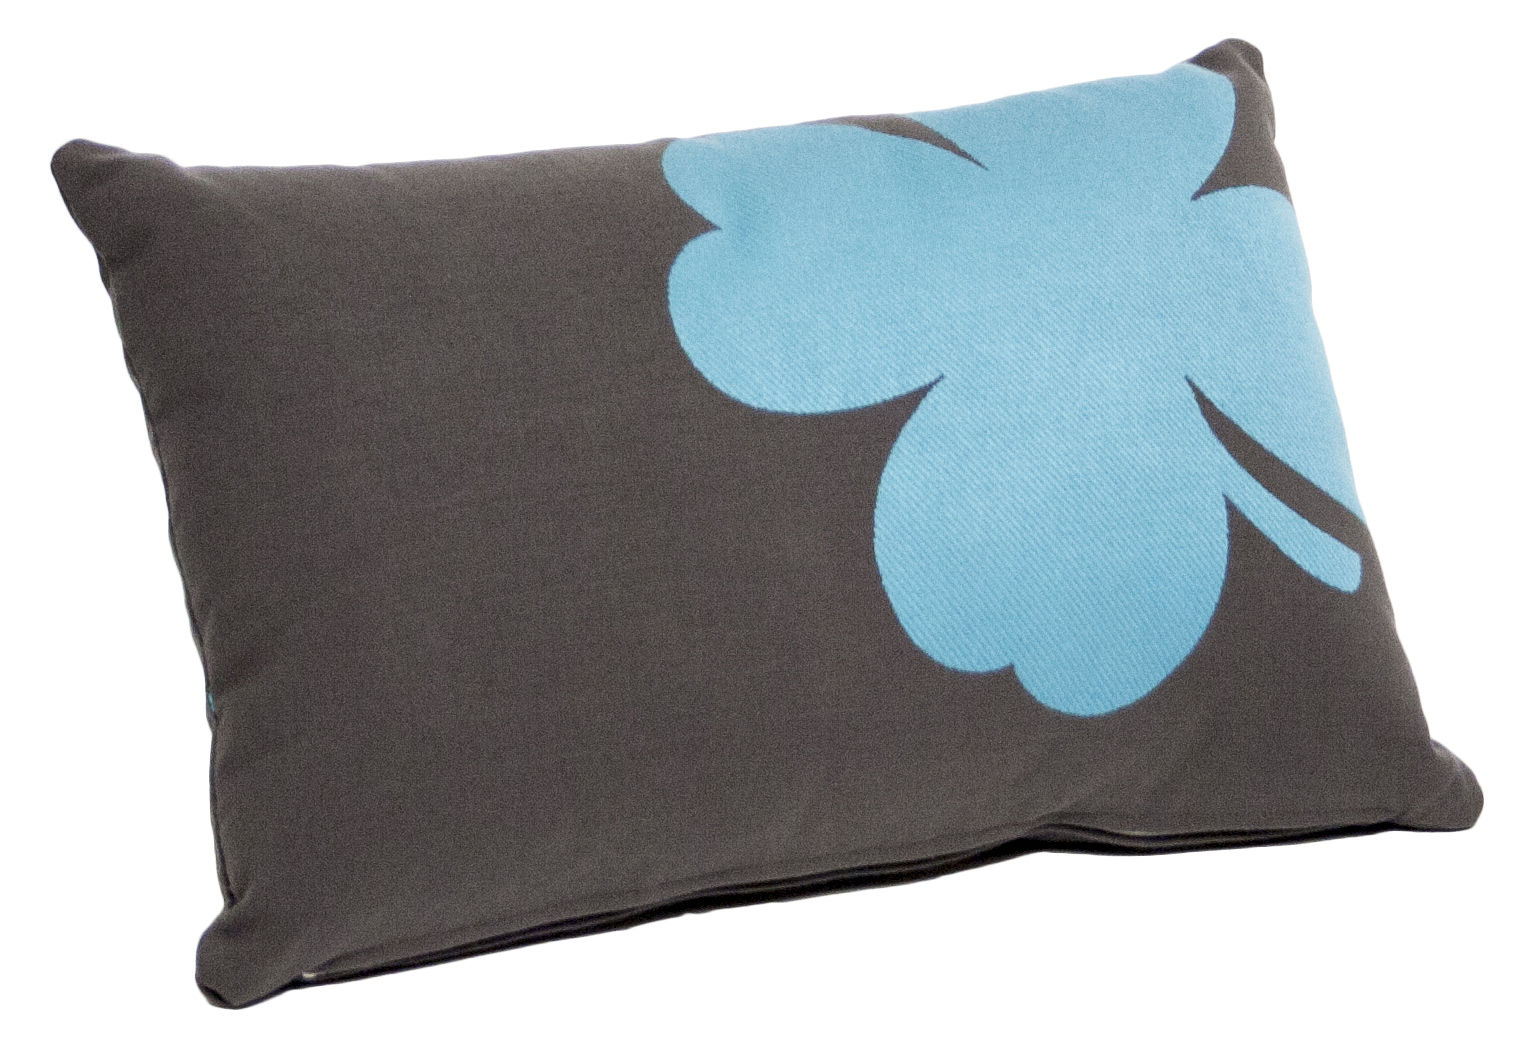 Tr fle coussin d 39 ext rieur anthracite by fermob for Coussin sofa exterieur